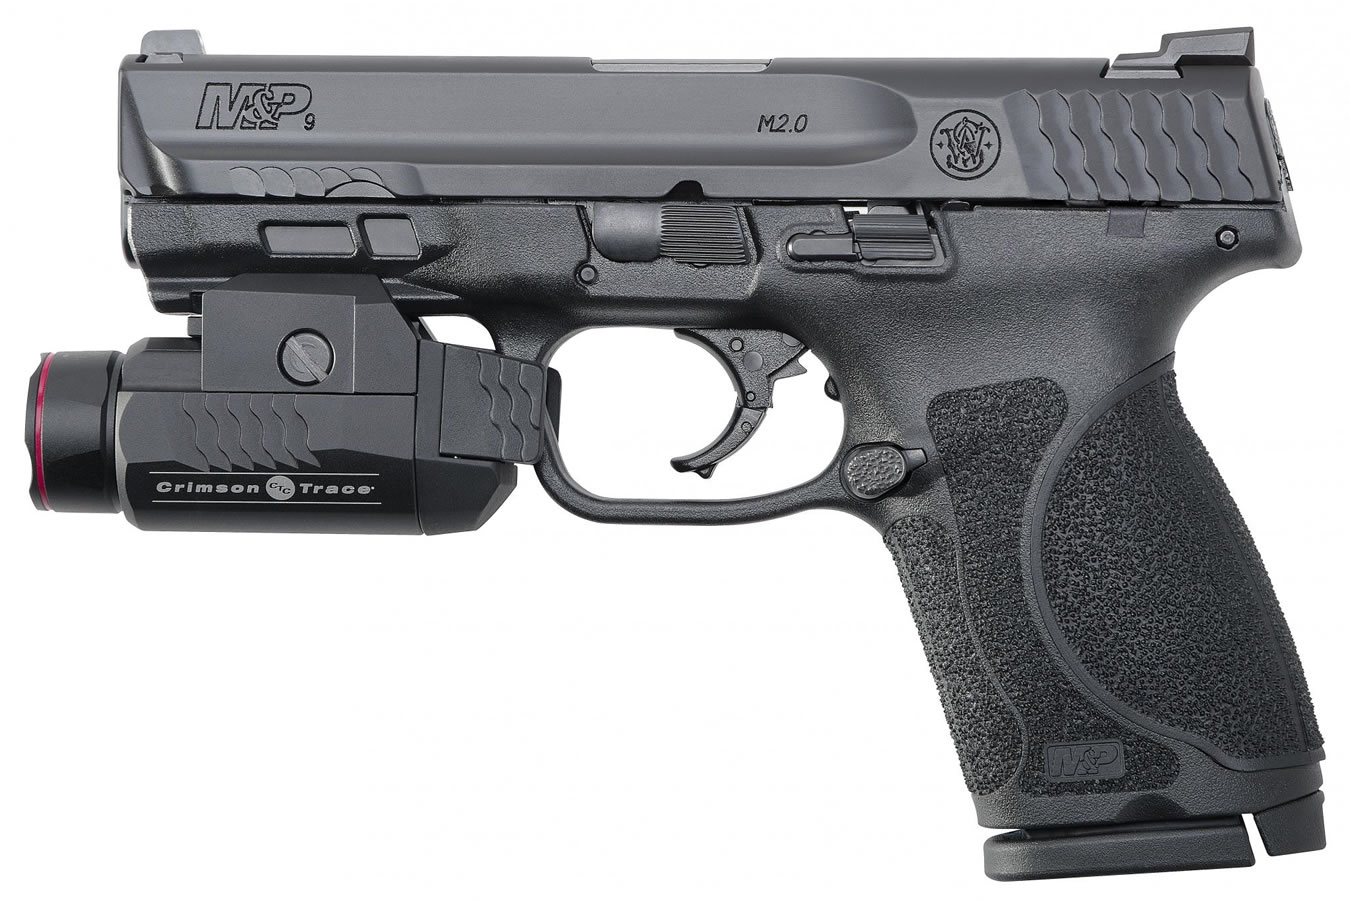 MP9 COMPACT M2.0 CT LIGHT NO THUMB SAFETY